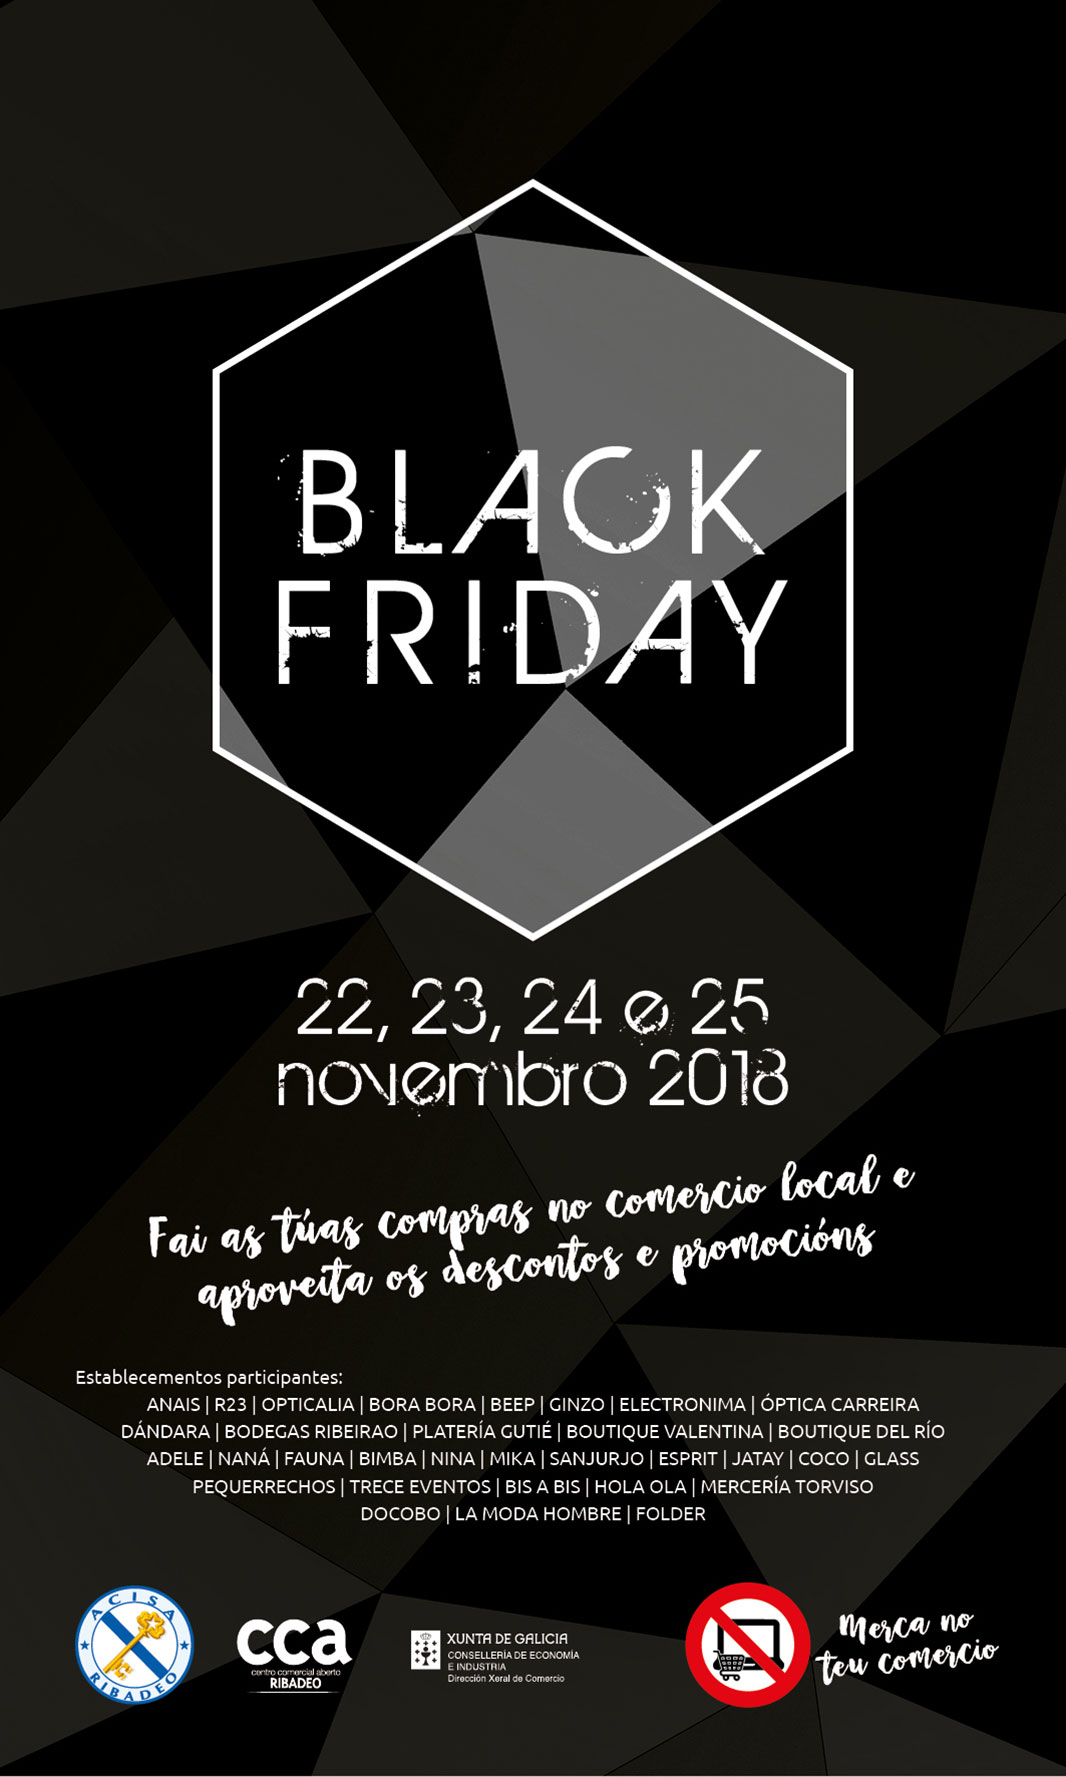 Black Friday en ACISA Ribadeo